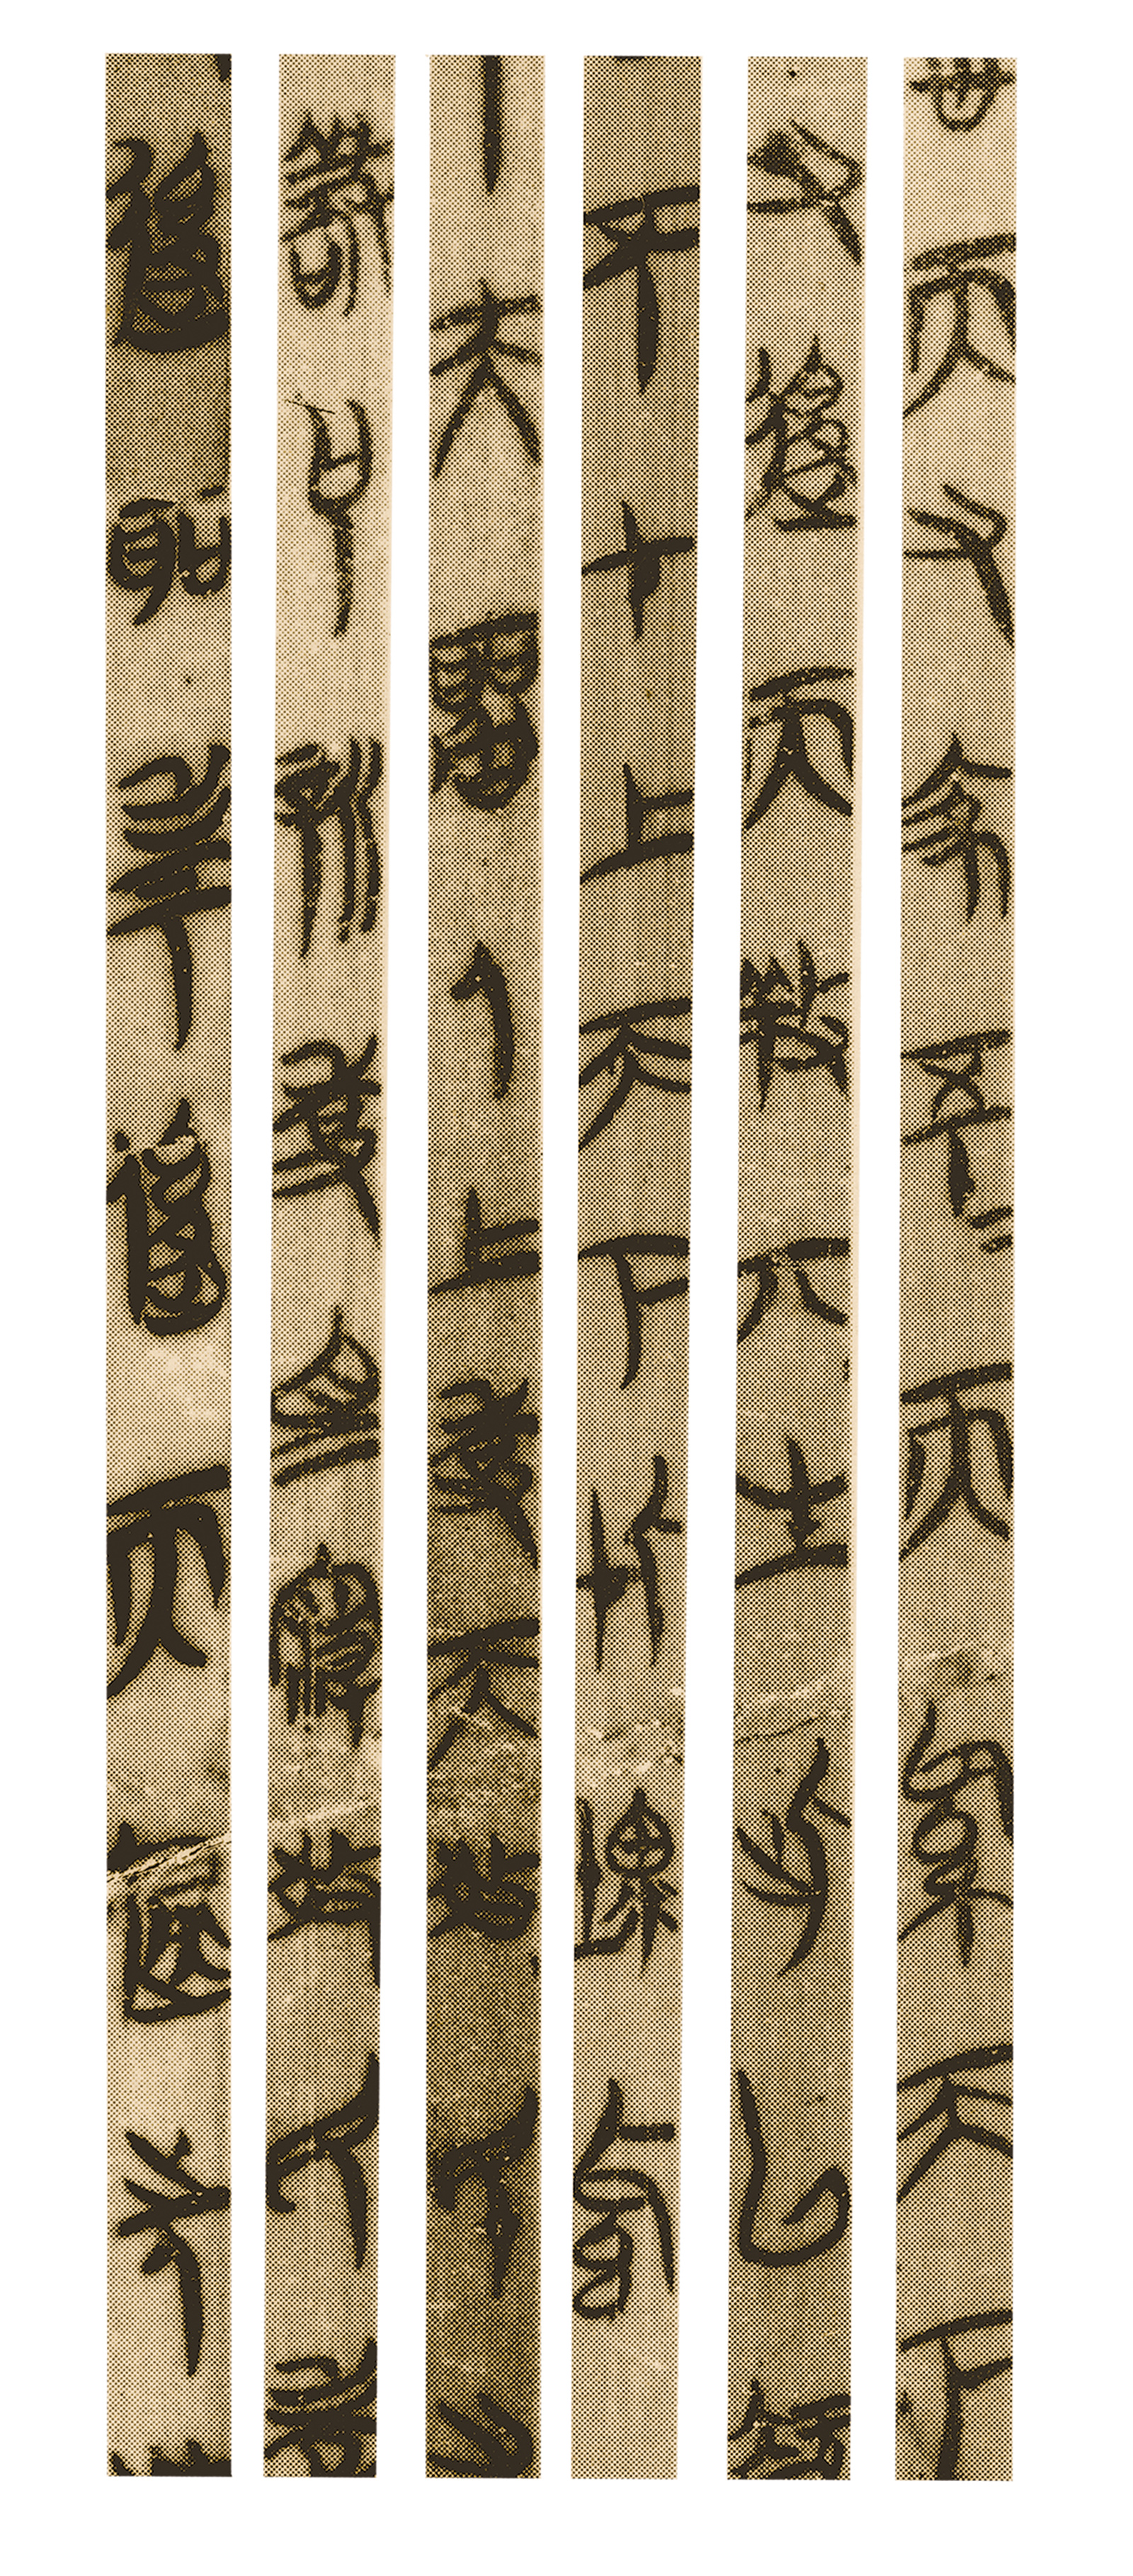 Bamboo slips from the Tang Yu Zhi Dao, an ancient text from the Guodian excavation advocating 'rule by the most meritorious' and 'abdication as a means of succession.' According to Sarah Allan in Buried Ideas, it 'reflects ideas that were current in the late fifth and early fourth centuries BCE.'